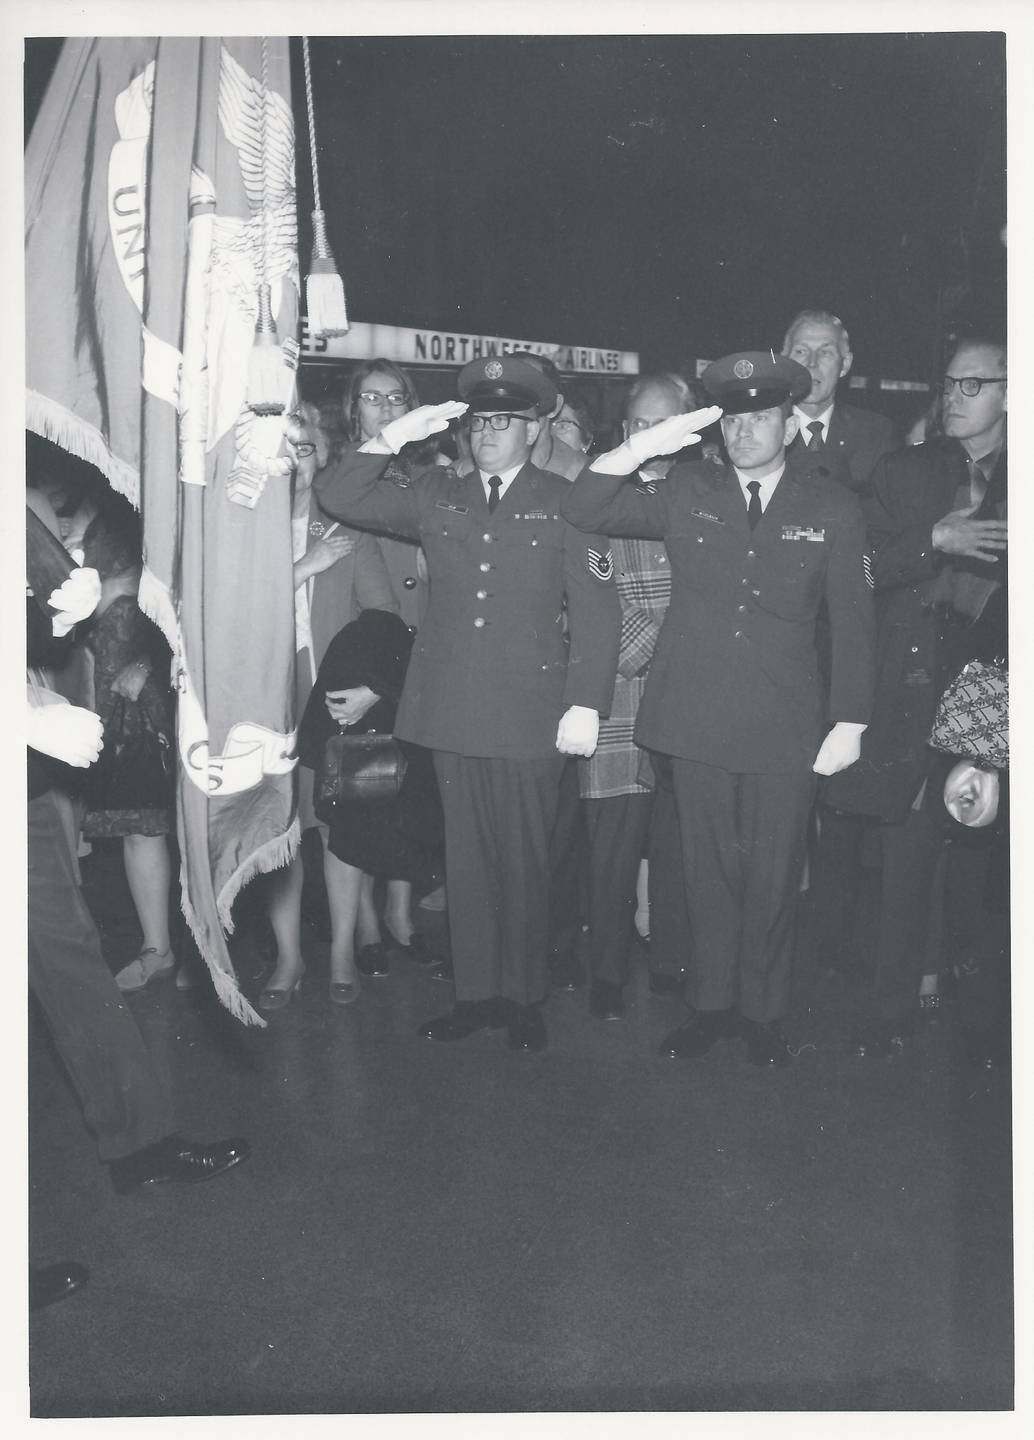 Two men in uniform saluting the flag while others watch.